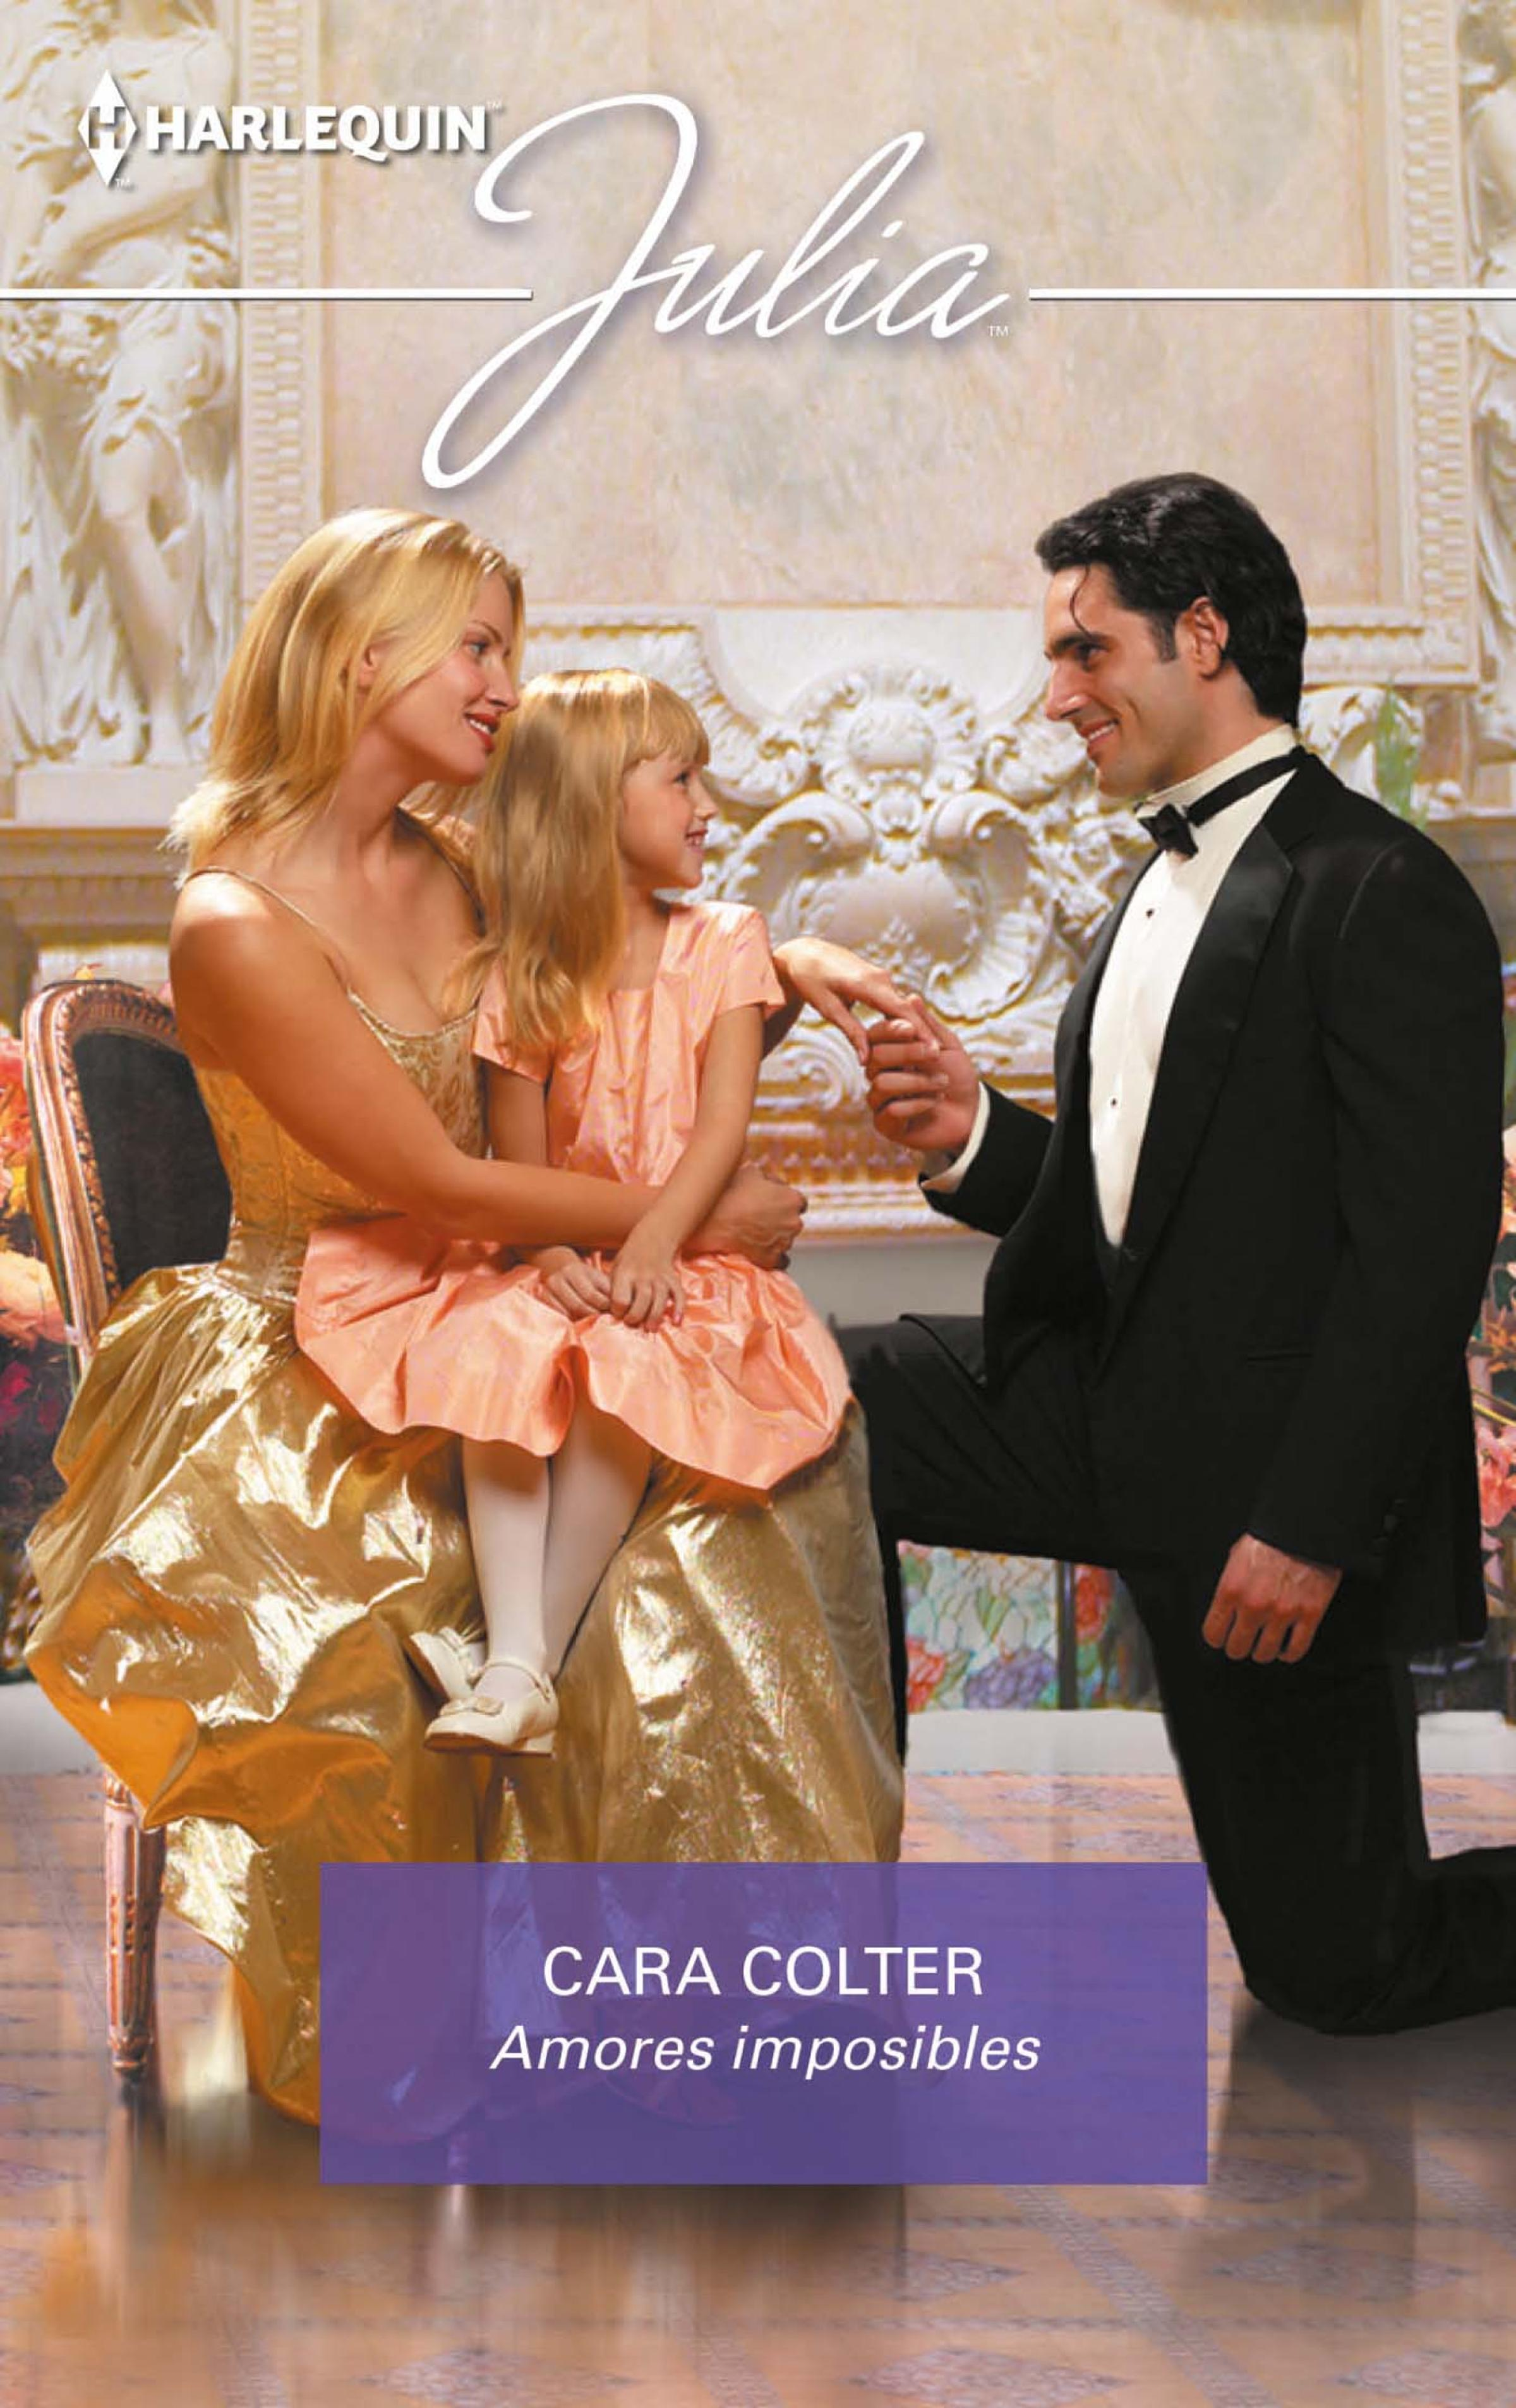 Cara Colter Amores imposibles cara colter interview with a tycoon